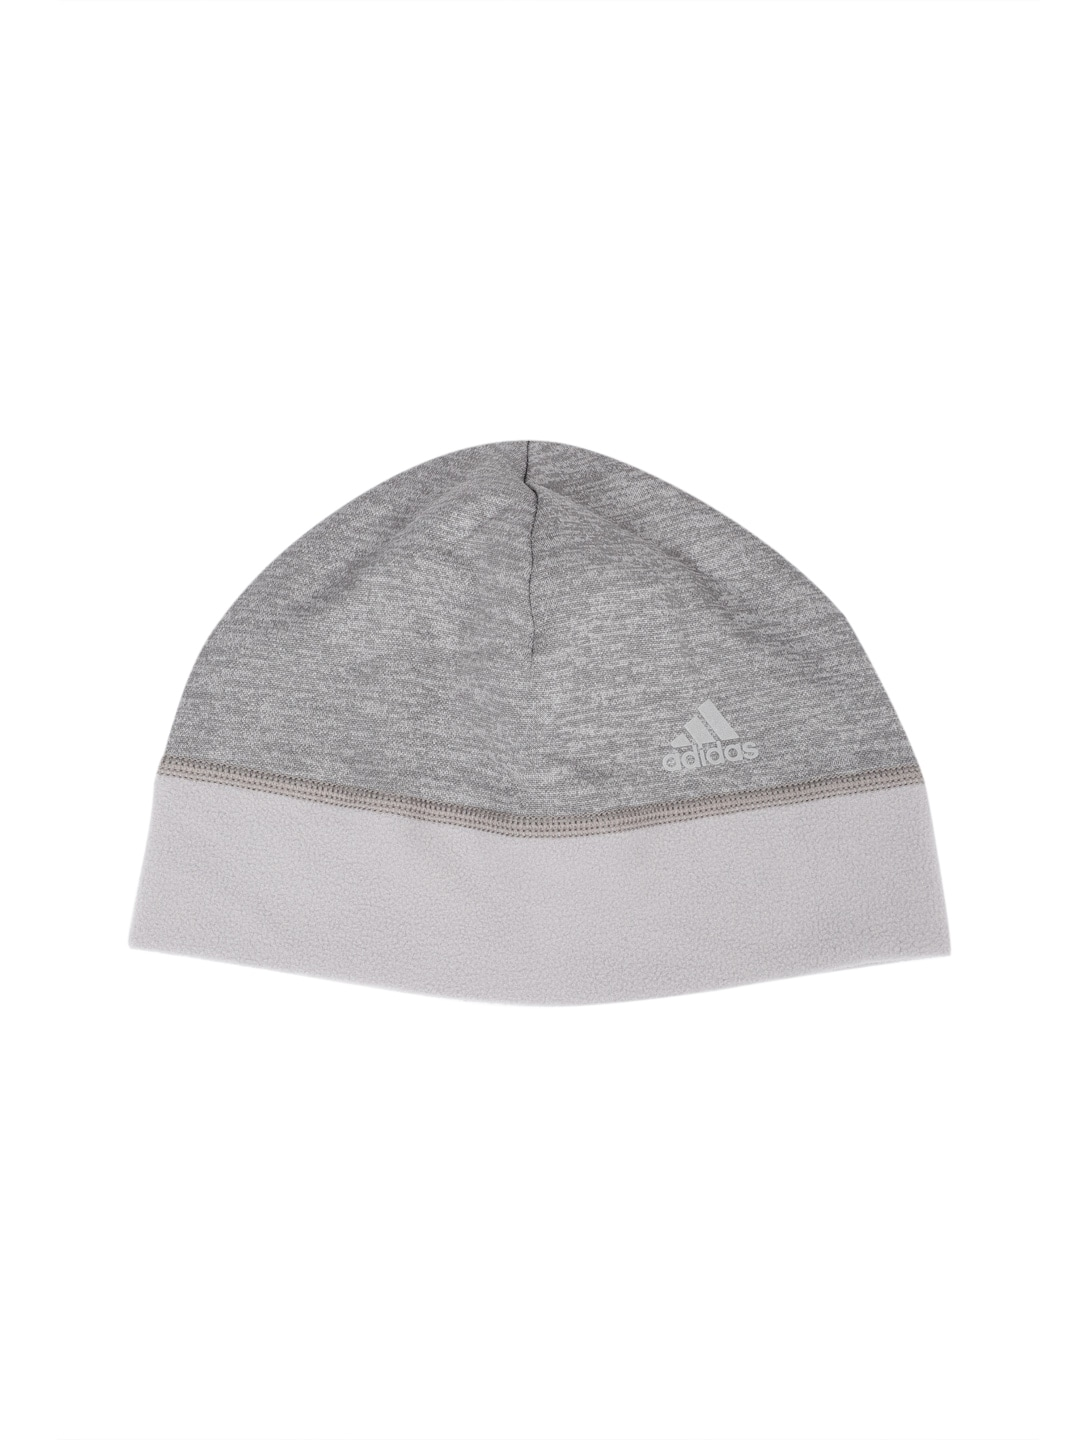 b37b71c54cf Adidas Cap - Buy Adidas Caps for Women   Girls Online